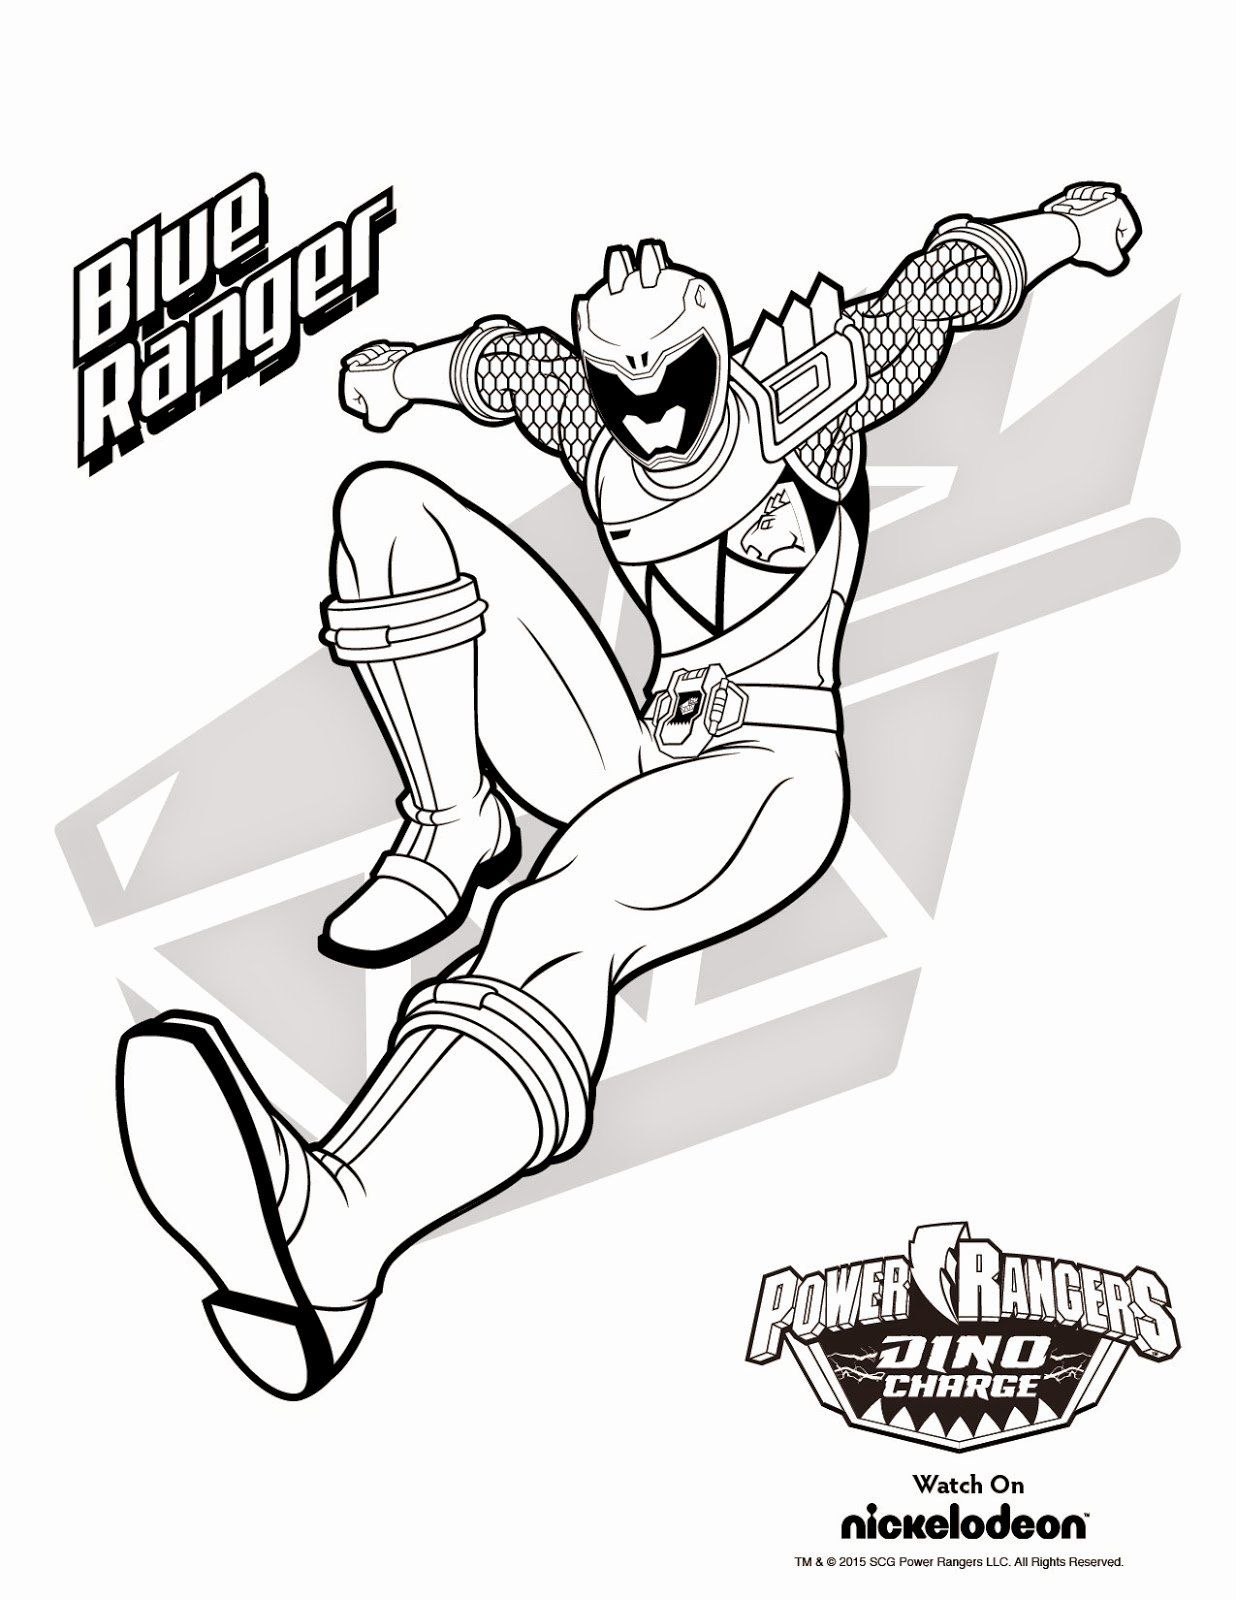 Power Rangers Coloring Book Luxury New Age Mama Get Charged Up This Spring With Power In 2020 Power Rangers Coloring Pages Power Rangers Dino Power Rangers Dino Charge